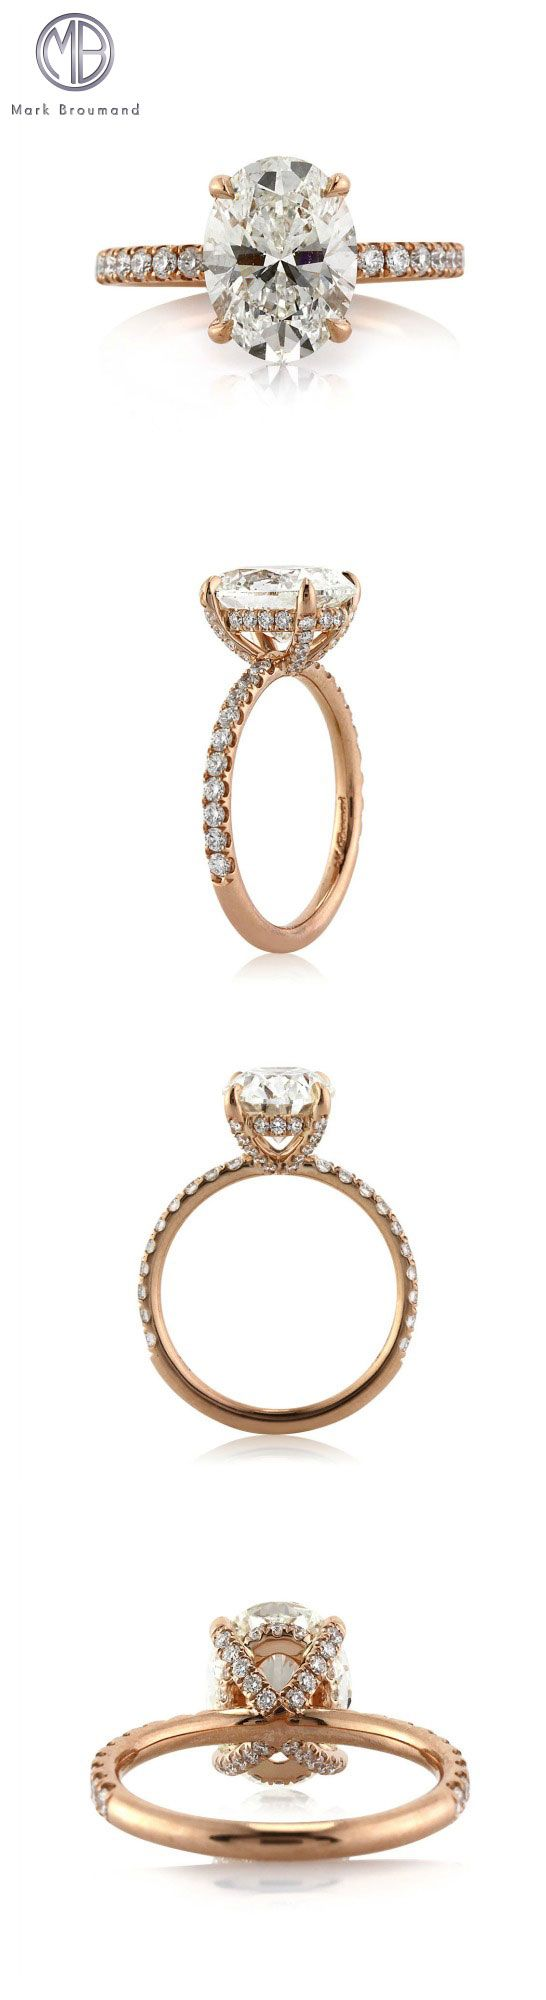 This luminous 3.01ct oval cut diamond engagement ring will truly take your breath away.